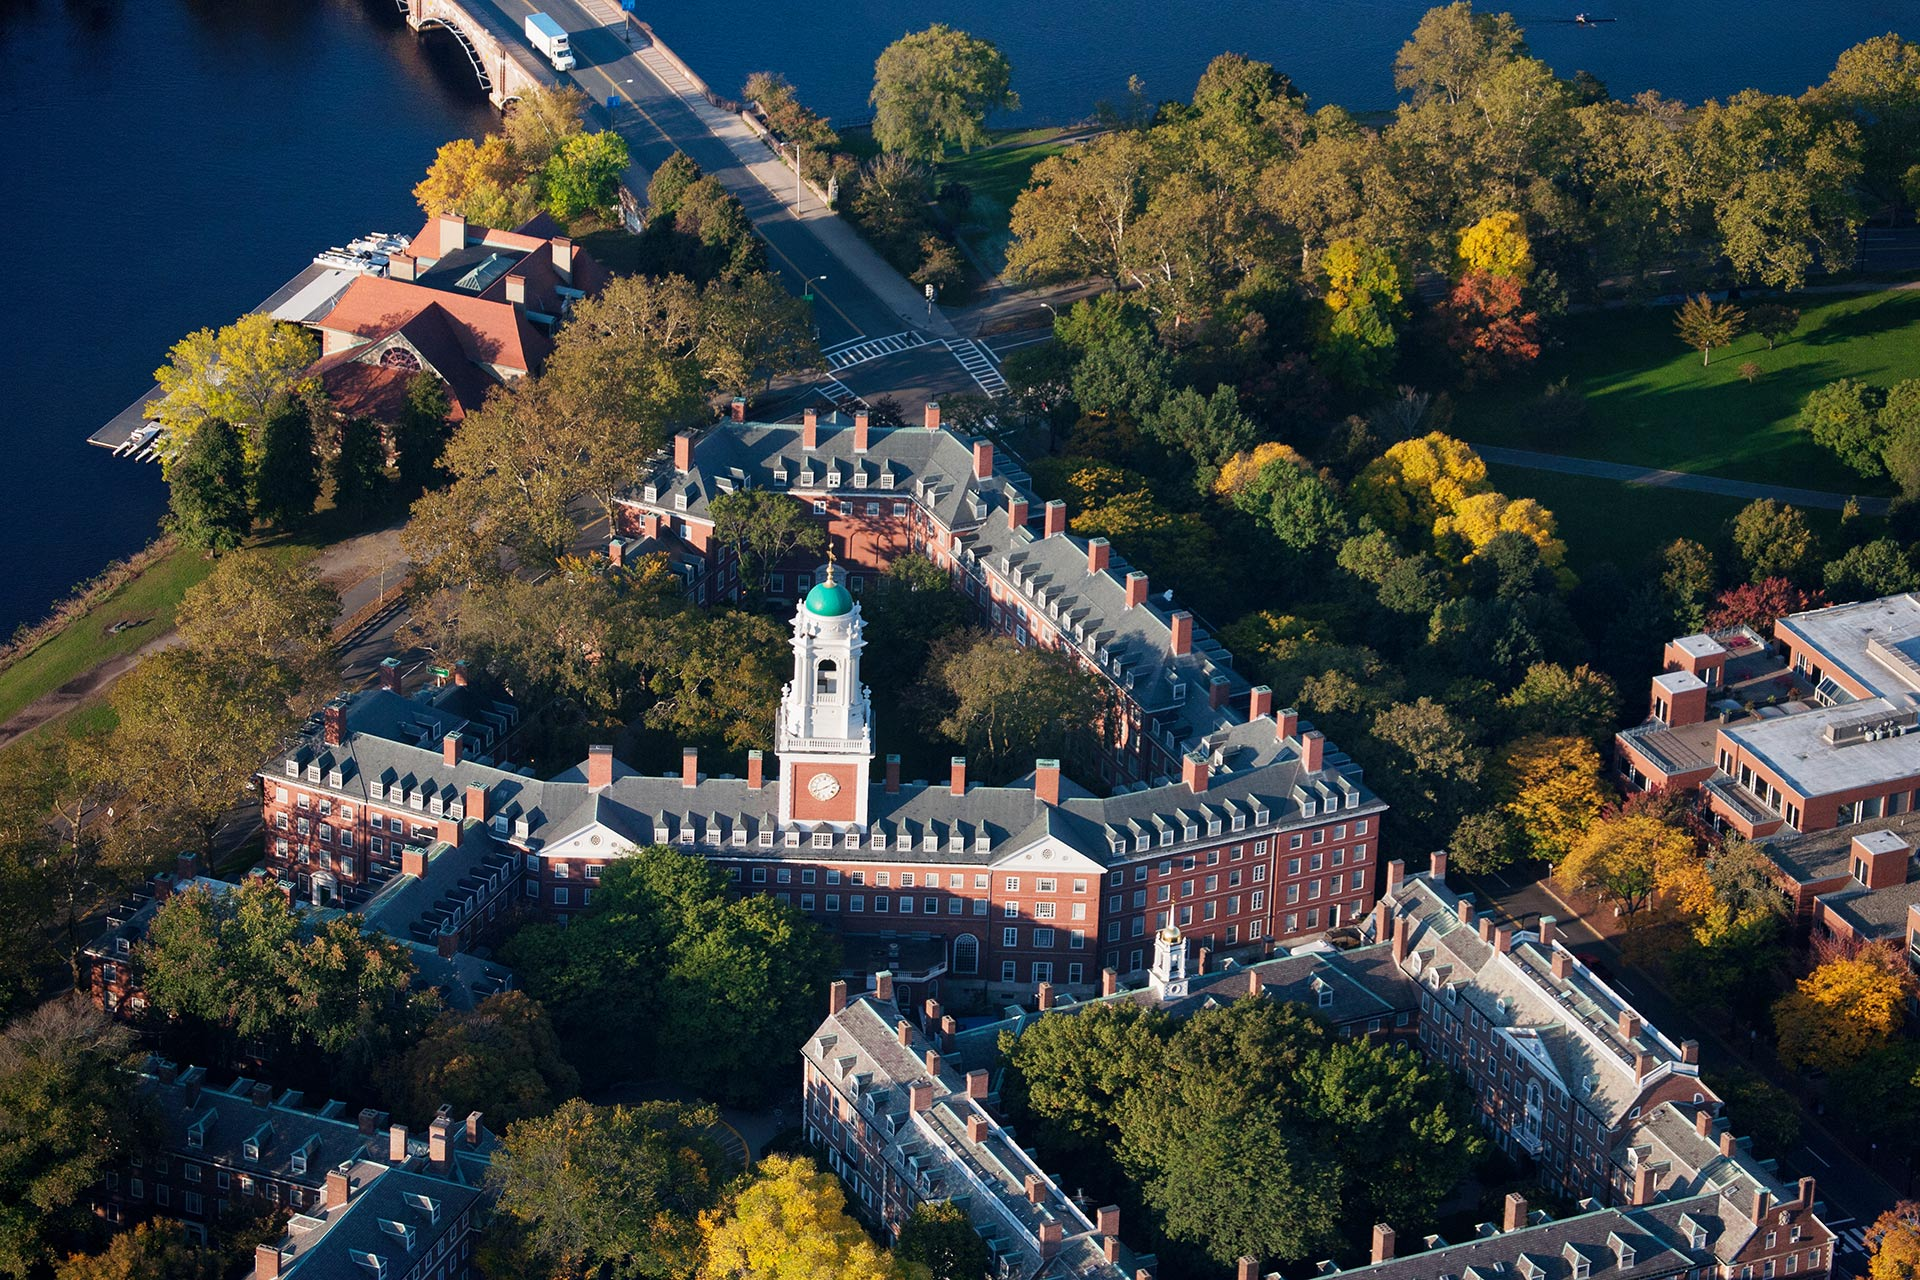 An aerial shot of Harvard's campus; Photo Courtesy of Joseph Sohm/Shutterstock.com